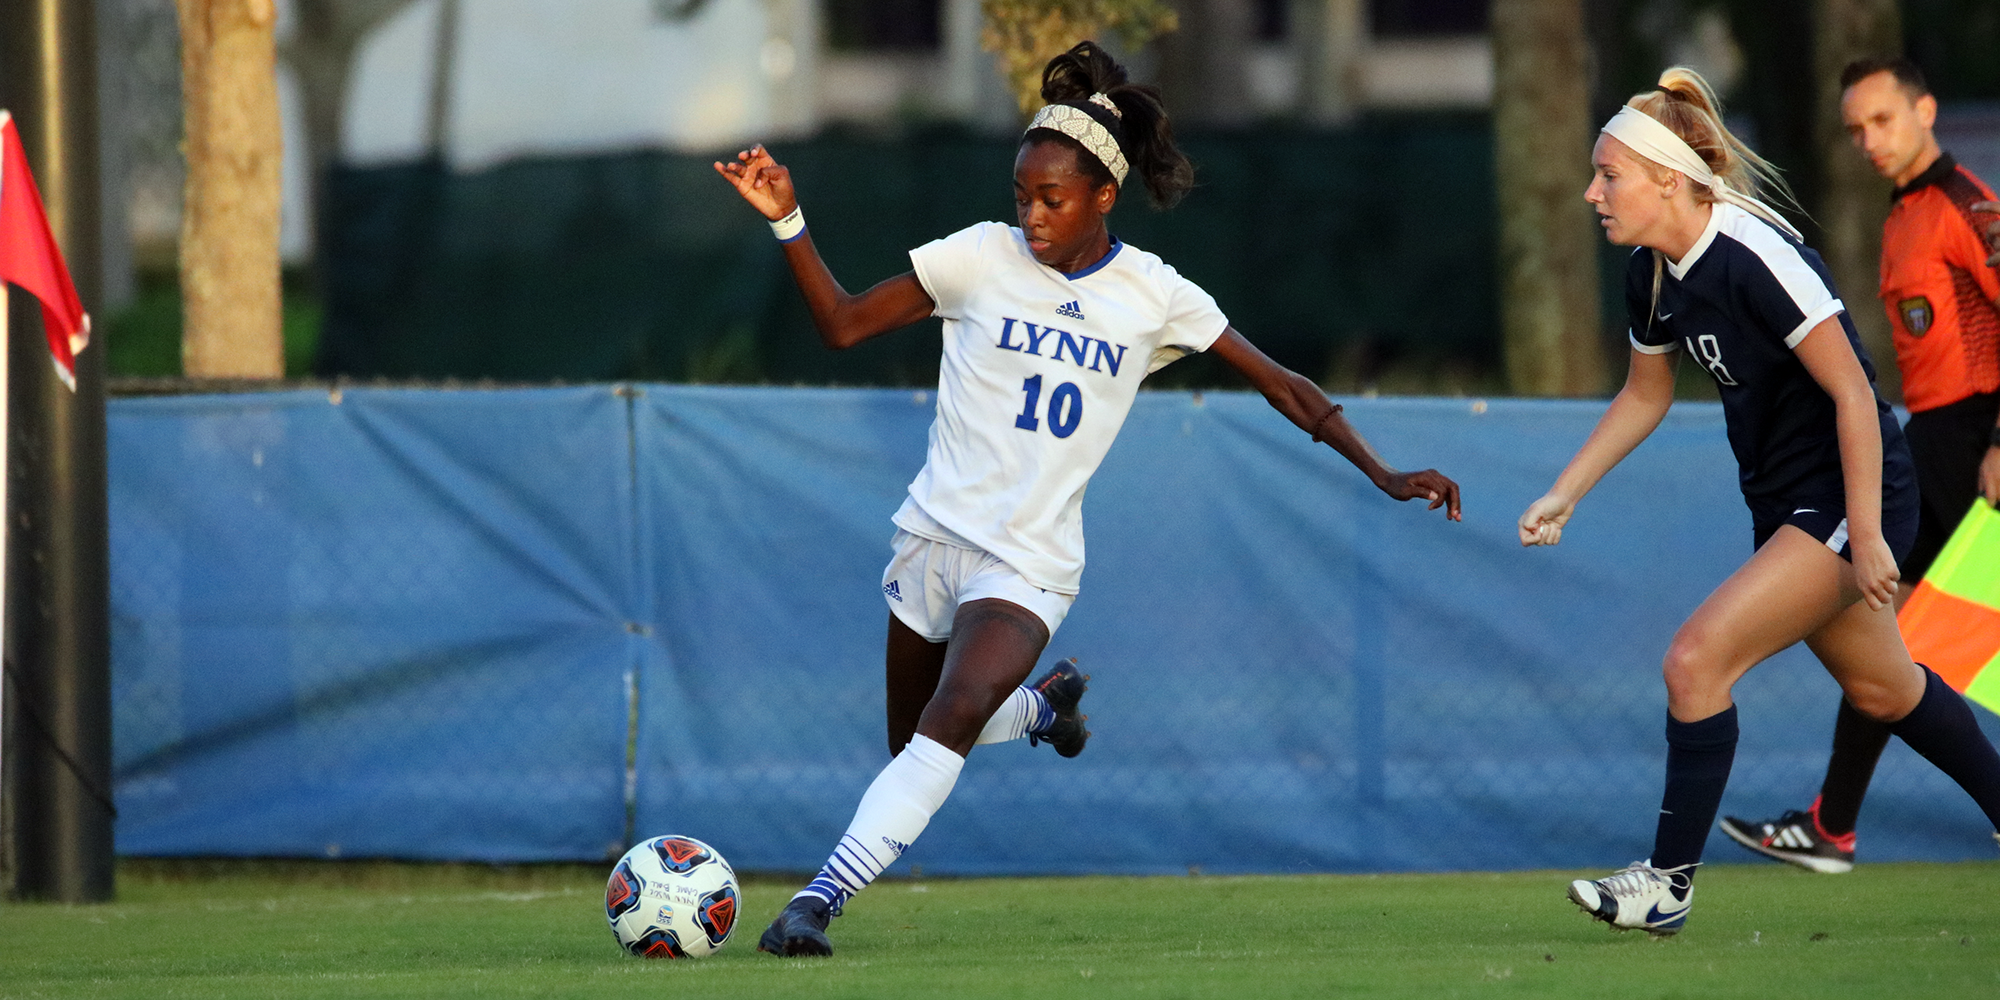 Overtime Heartbreak; Women's Soccer Falls at the Buzzer in Season Finale